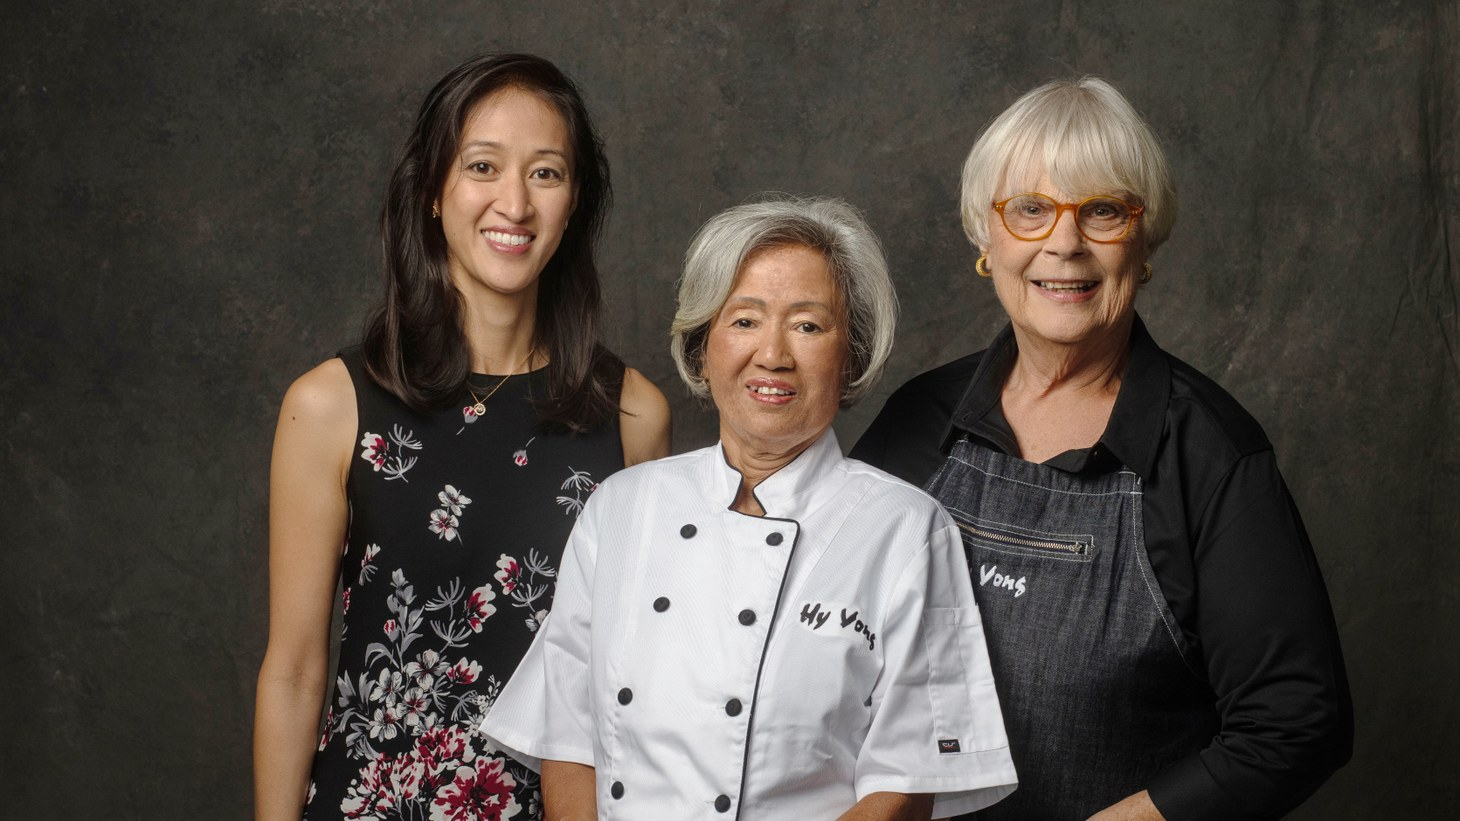 Lyn Nguyen (left) remembers peeling carrots as a child at Hy Vong, the restaurant started by her mother, Tung Nguyen (center) and Kathy Manning (right), who she refers to as her second mother.